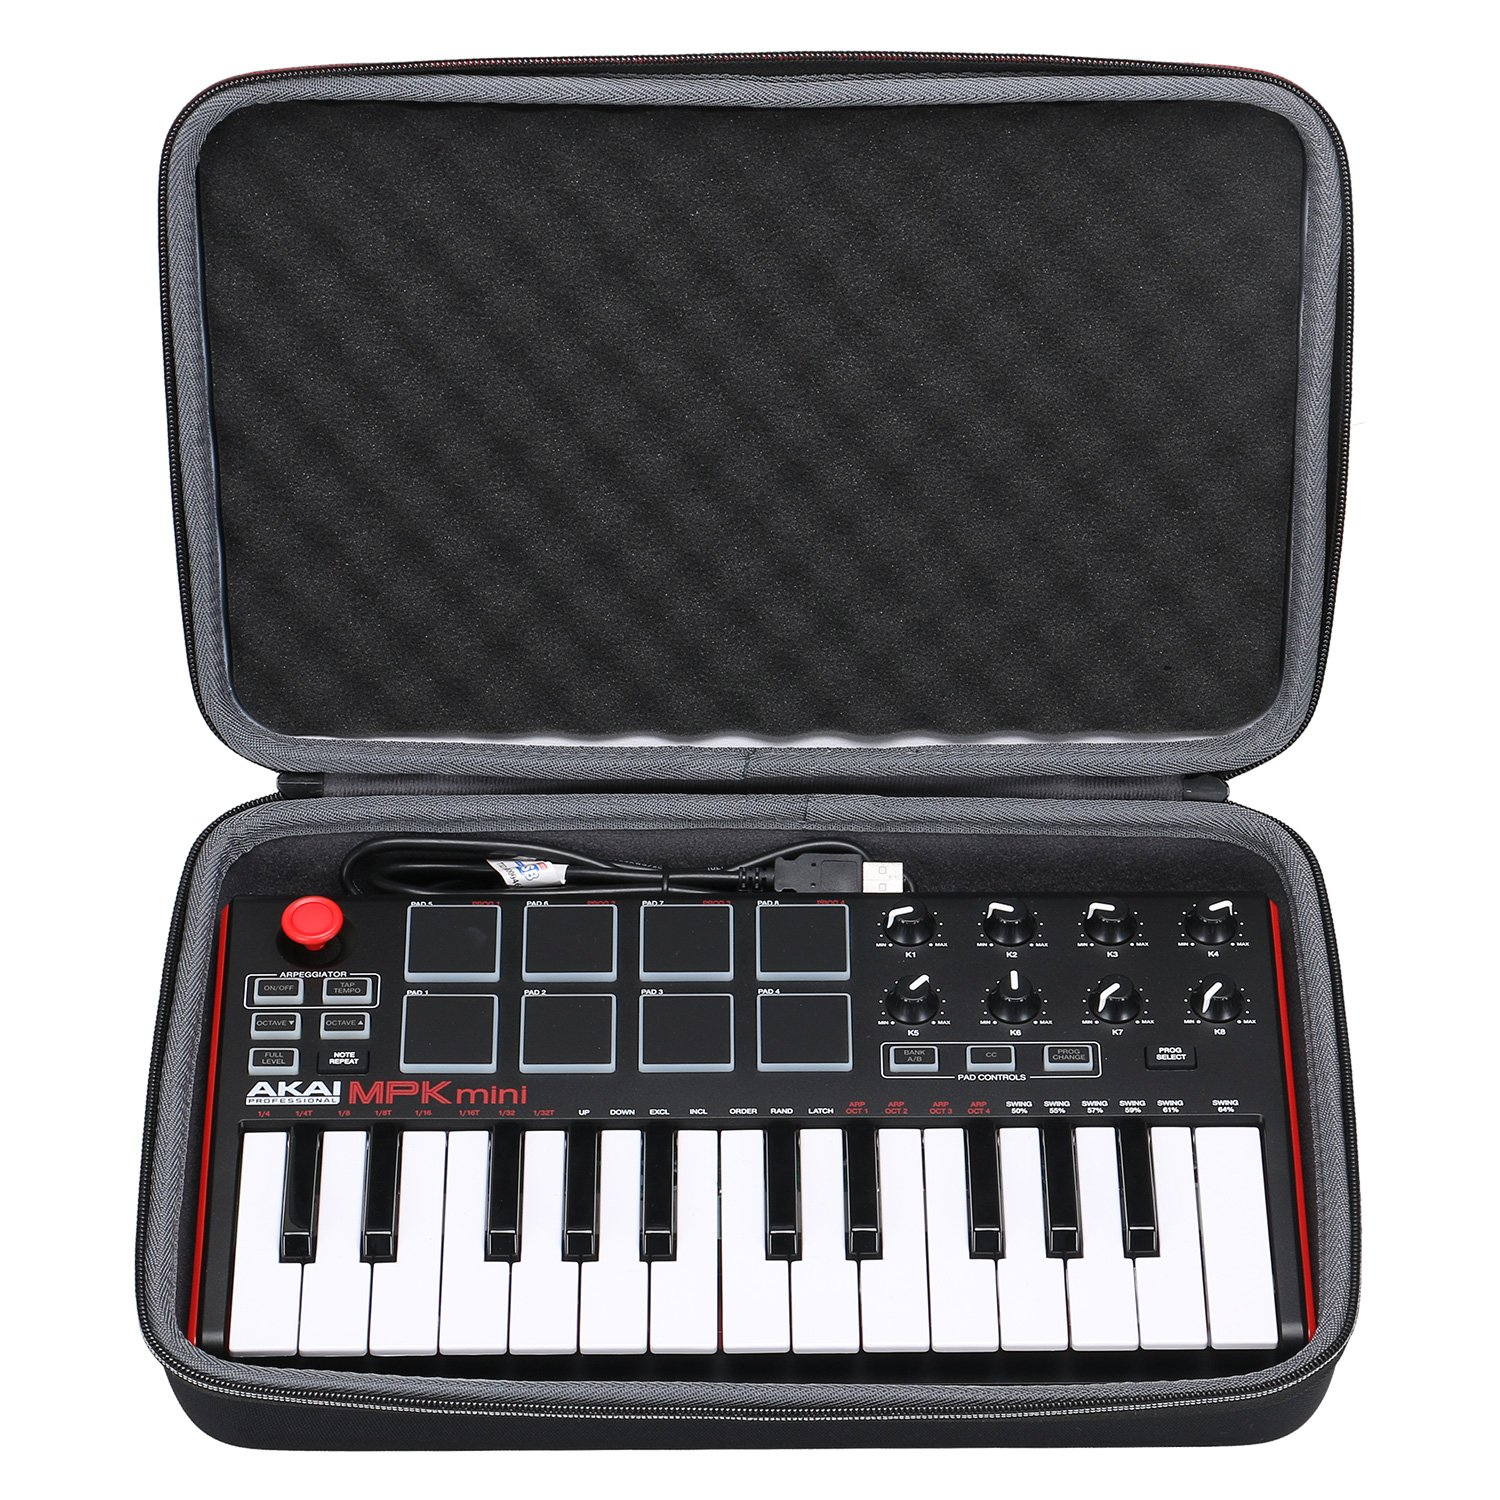 XANAD Case for Akai Professional MPK Mini MKII | 25-Key Ultra-Portable USB MIDI Drum Pad & Keyboard Controller by XANAD